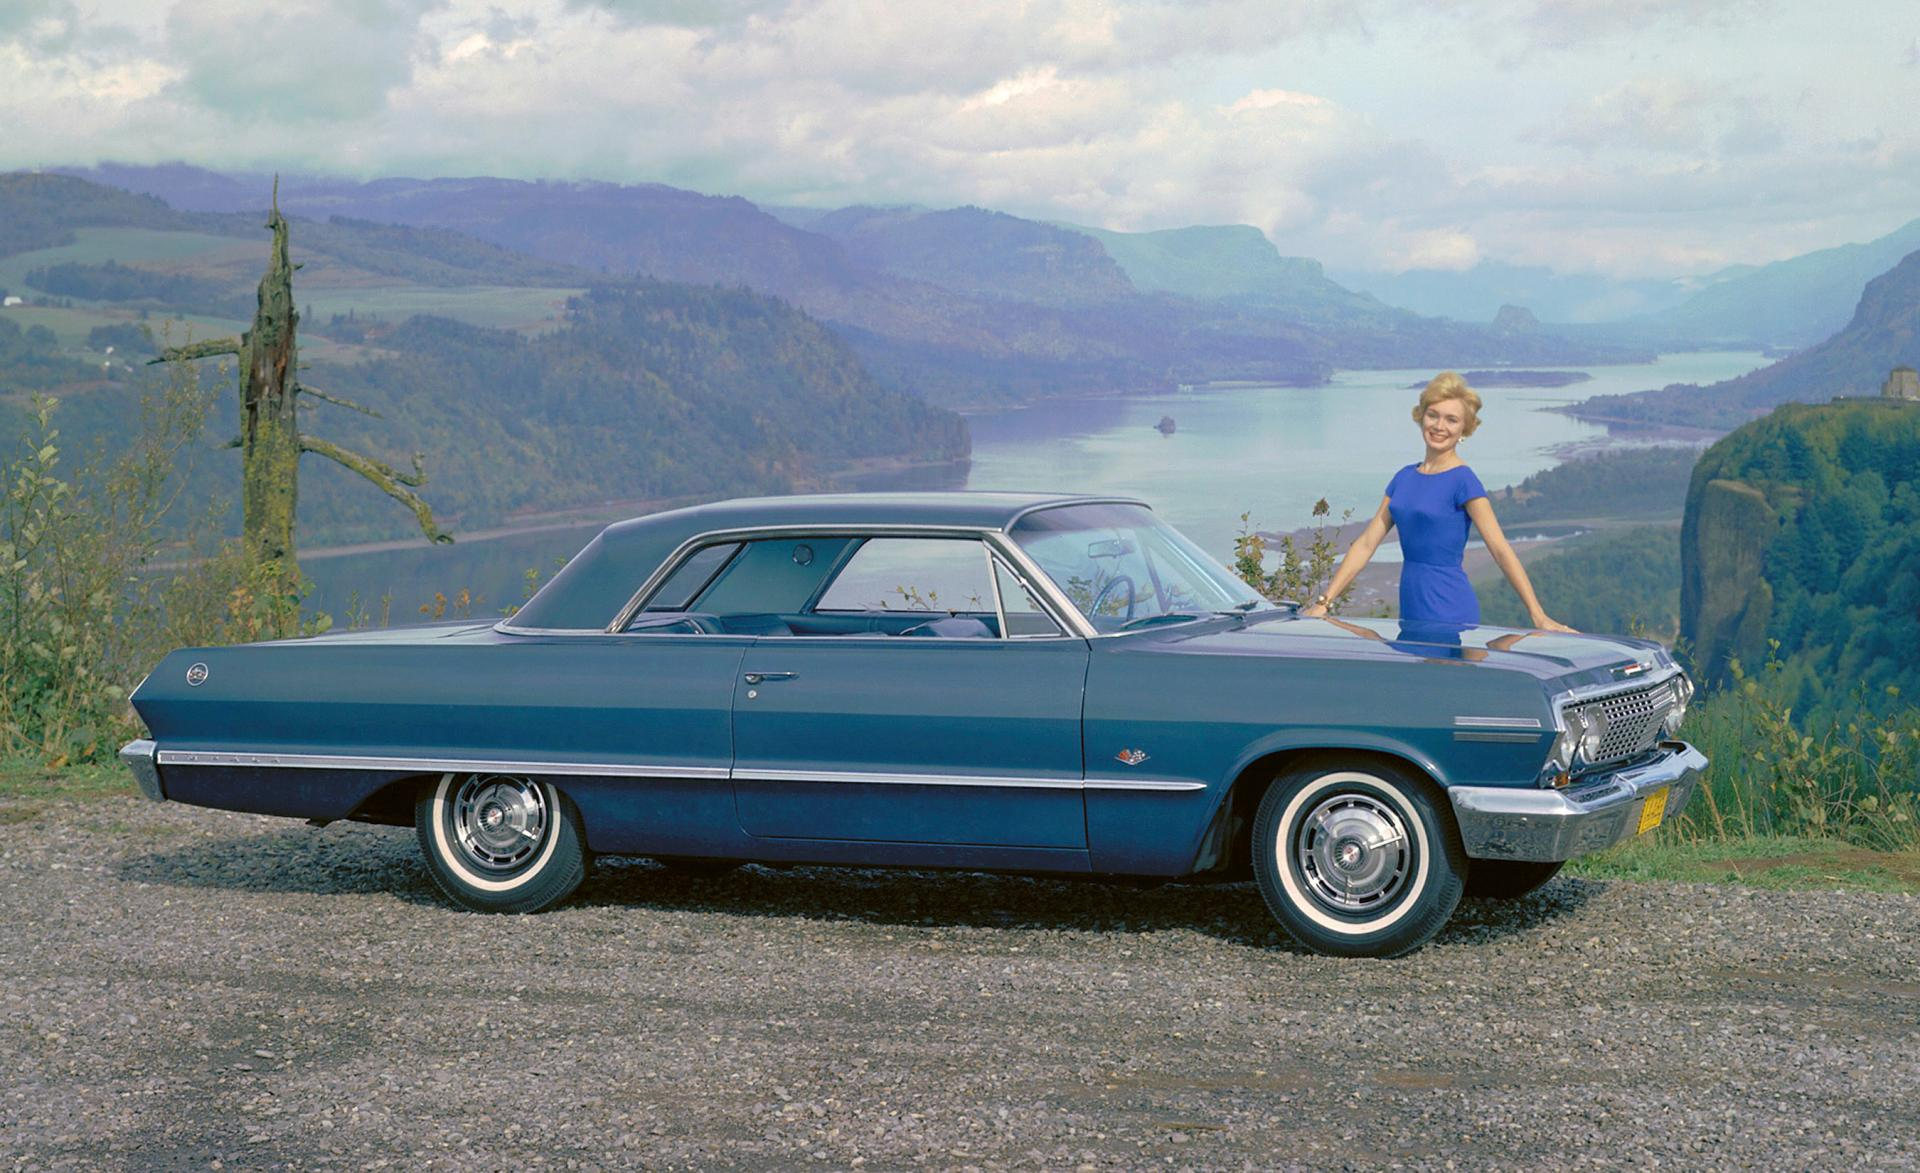 1963 Chevrolet Impala Series History Pictures Value Auction Sales 1966 Chevy Caprice Wagon Research And News